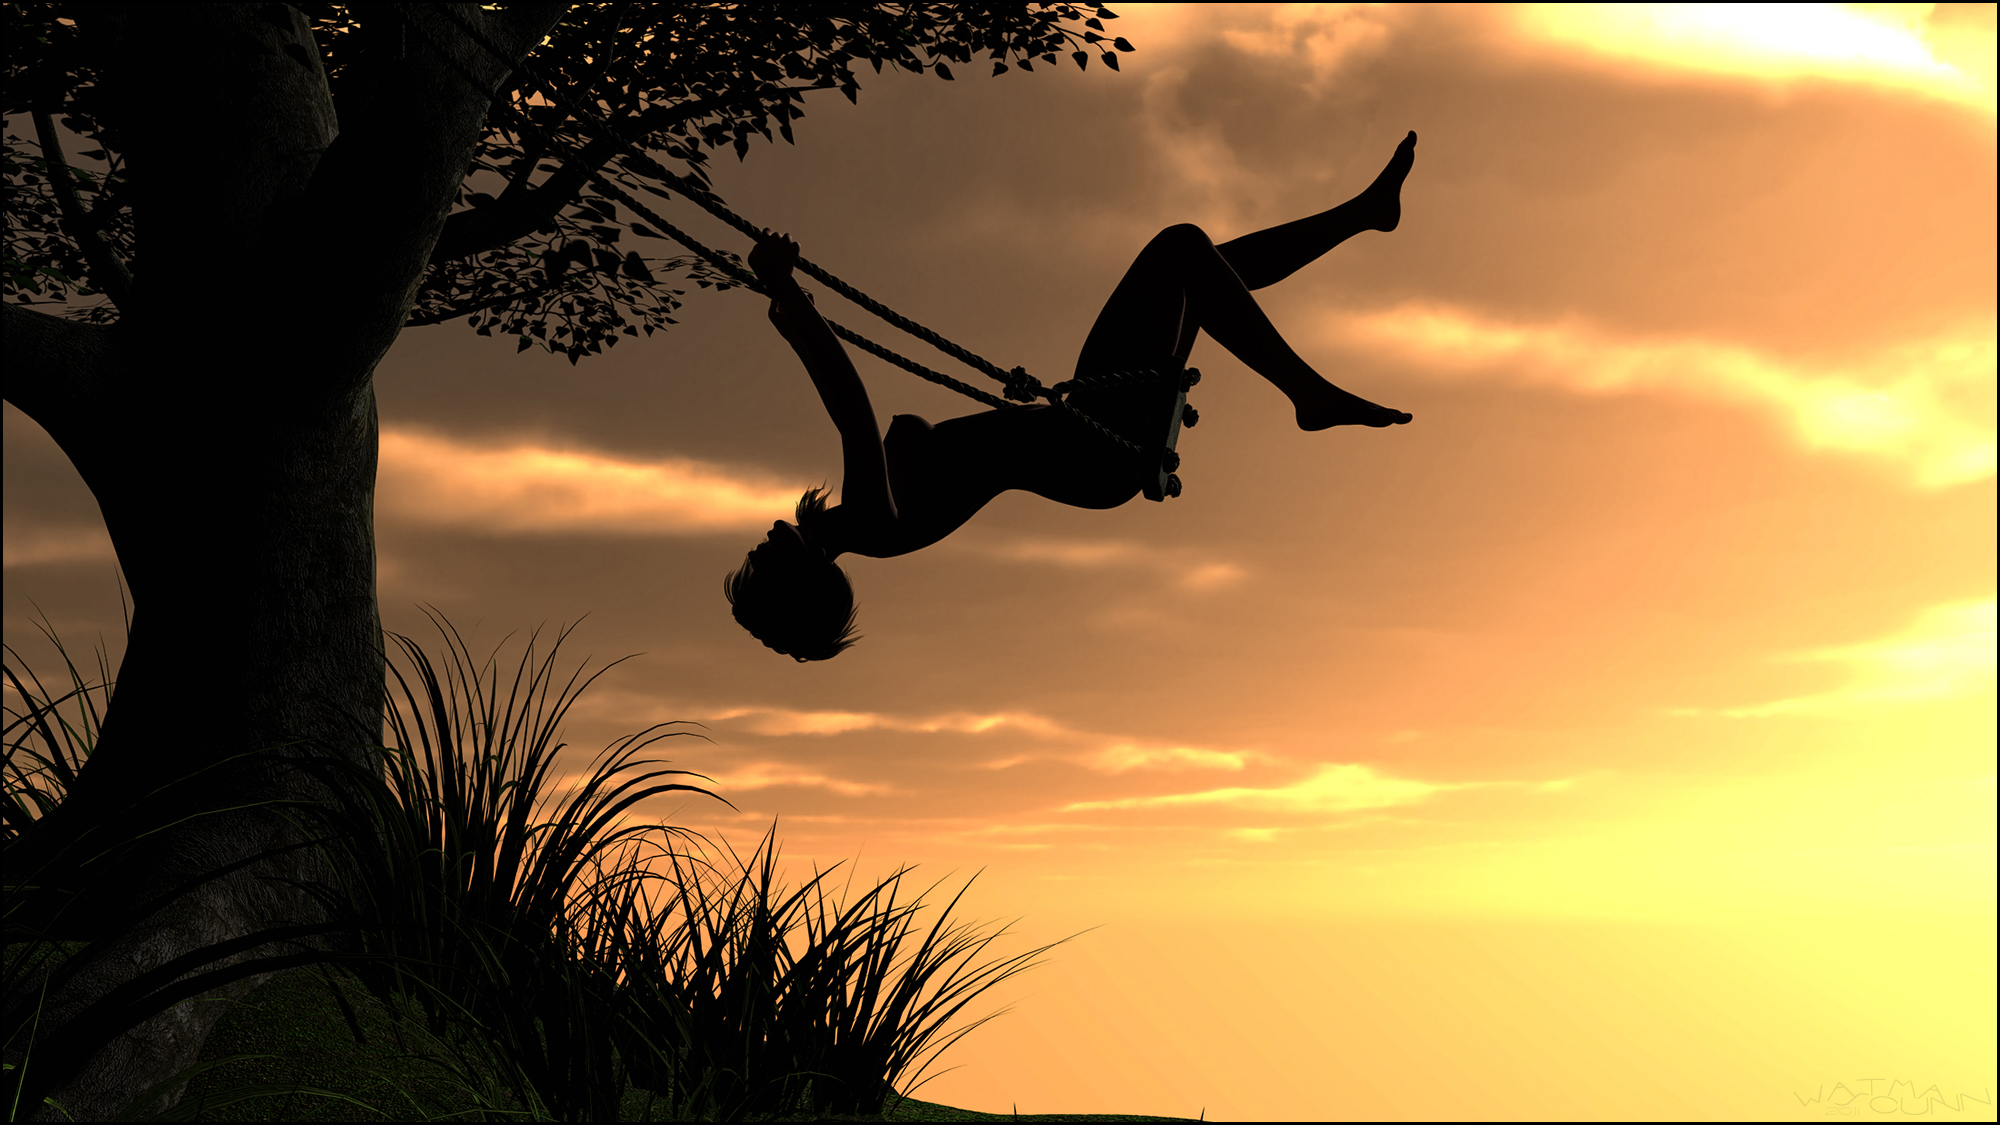 Swinging in the sunset by Sedorrr